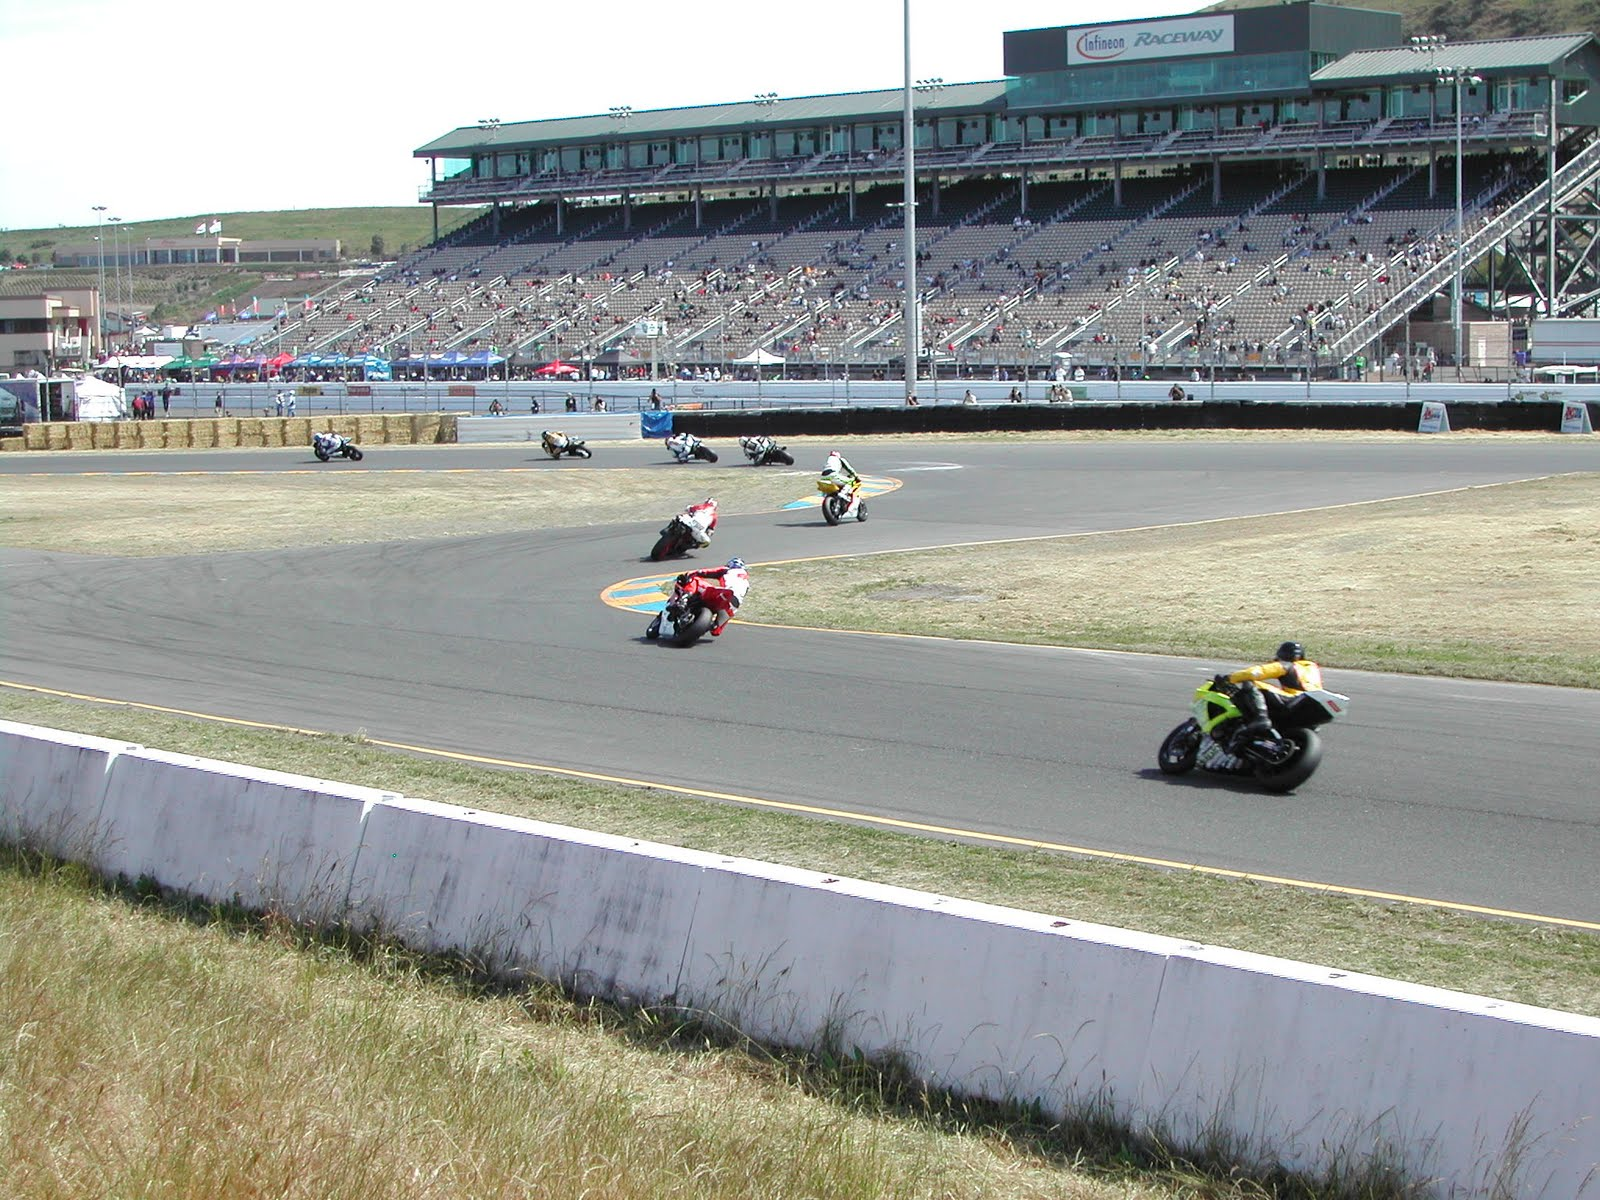 Turn 9 action the main grandstand in the background